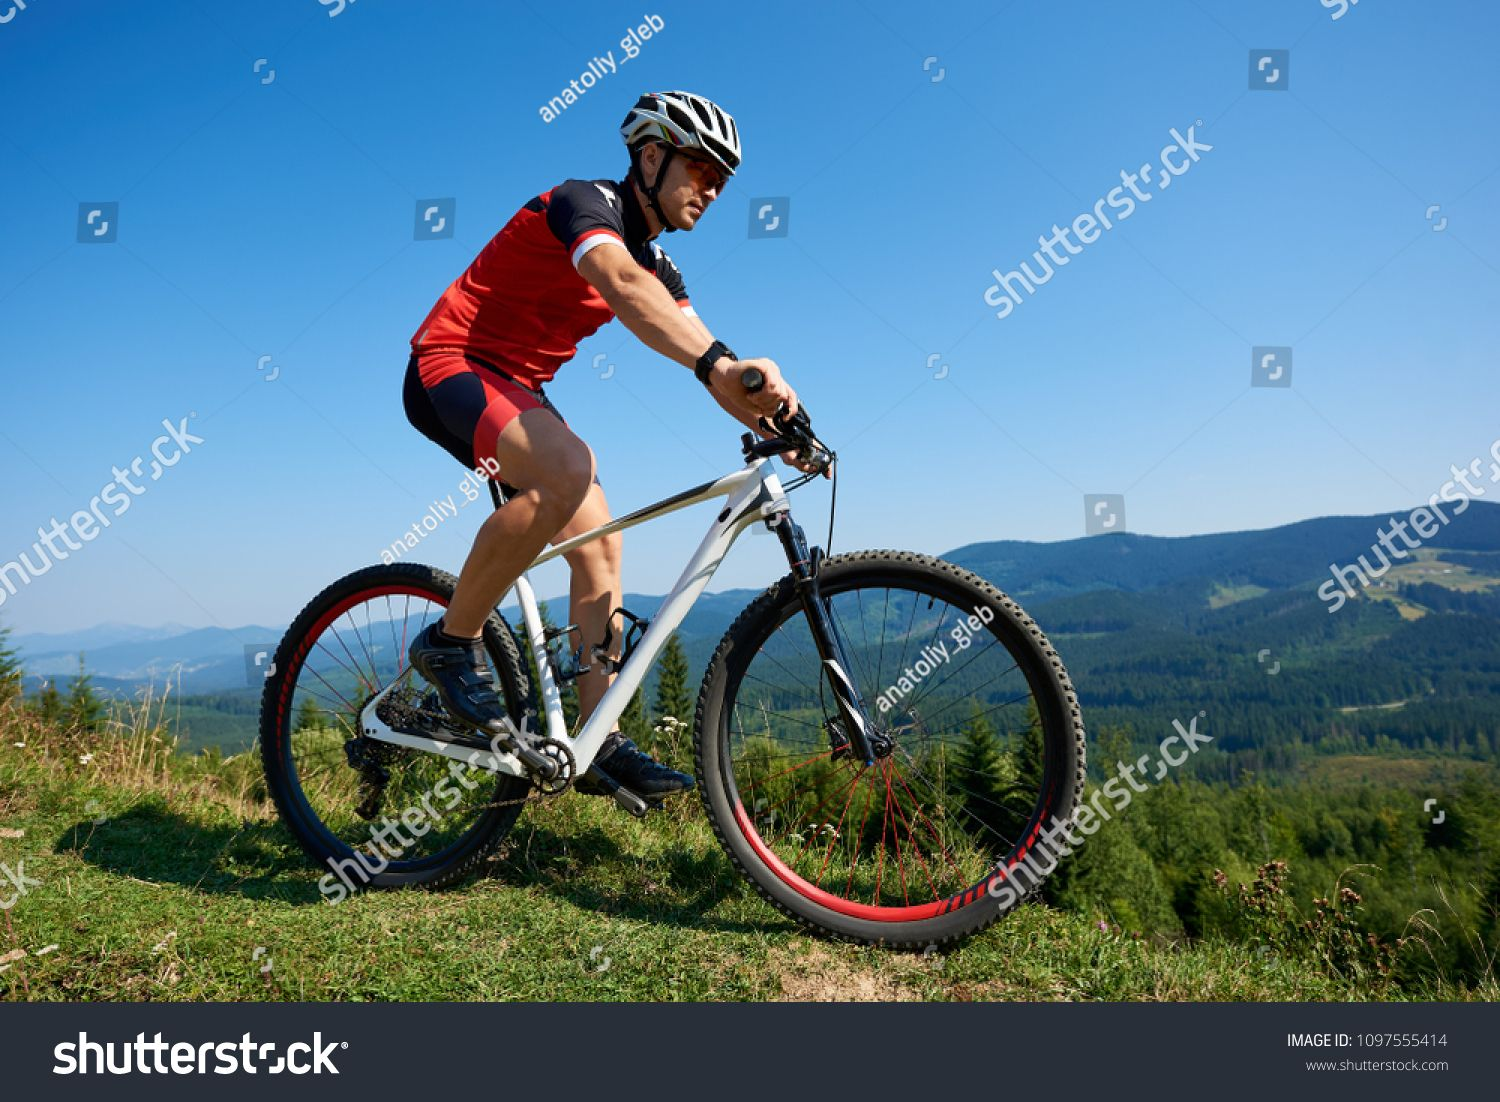 Muscular tourist cyclist in helmet, sunglasses and full